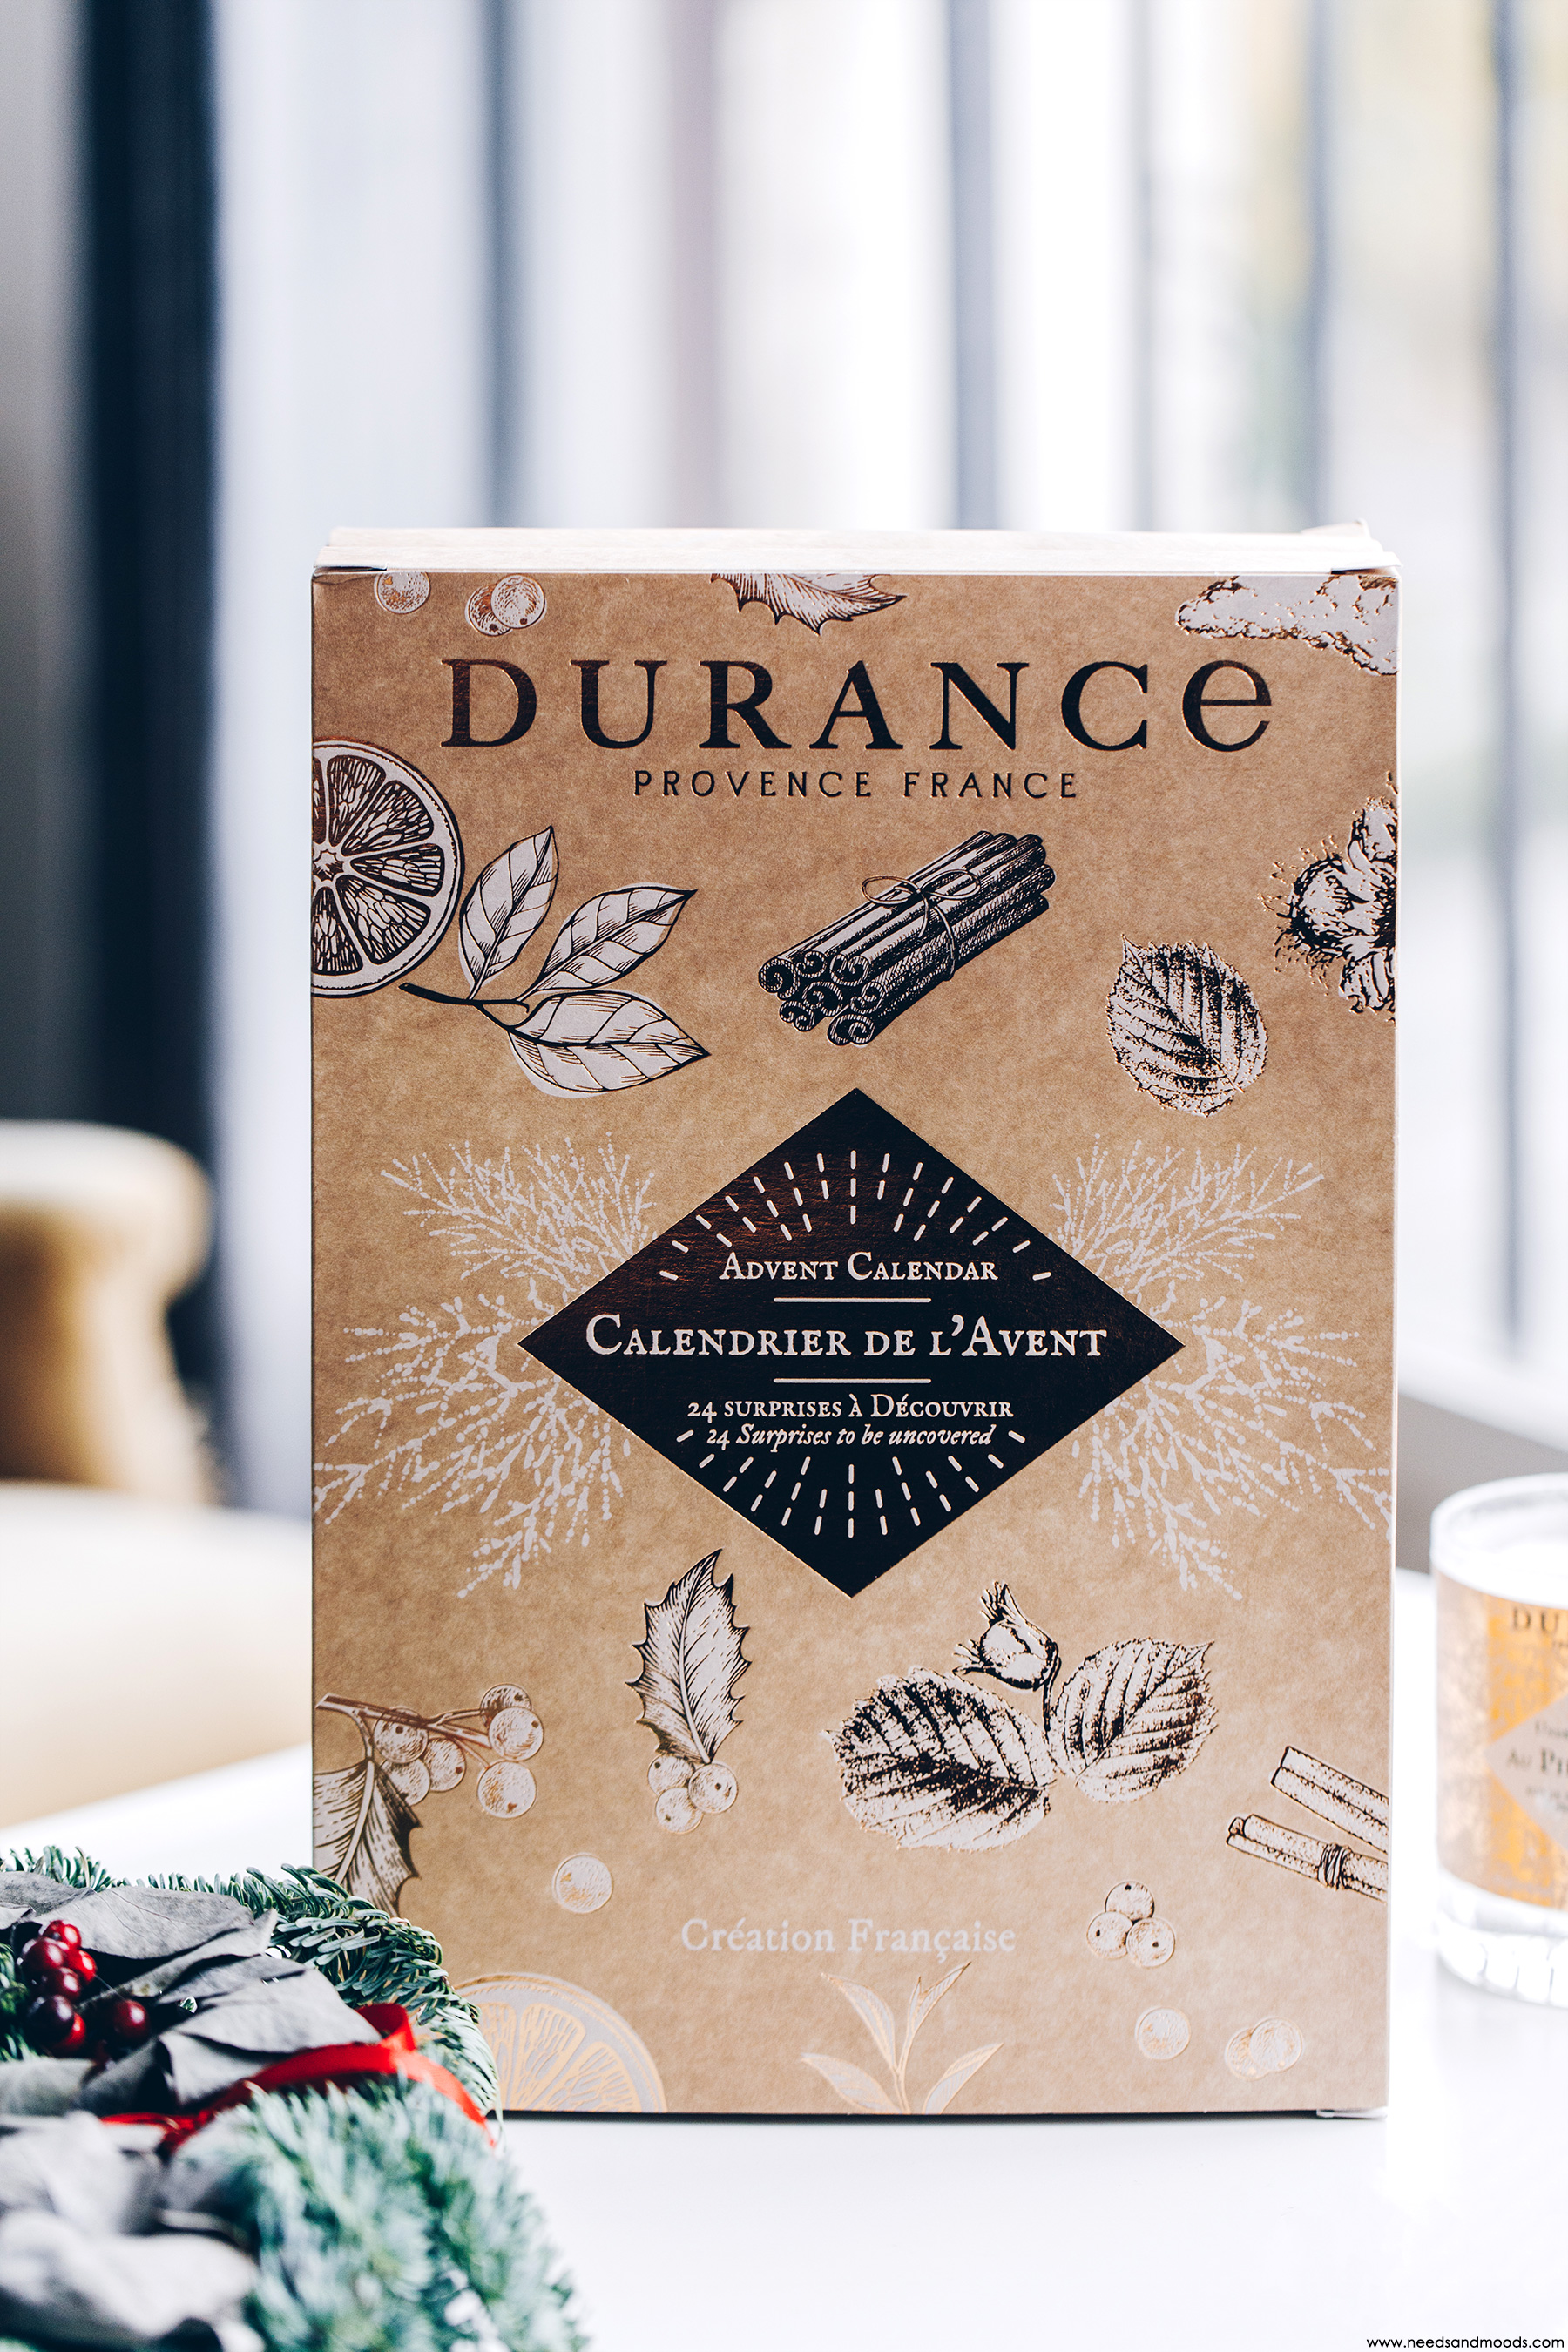 durance calendrier avent